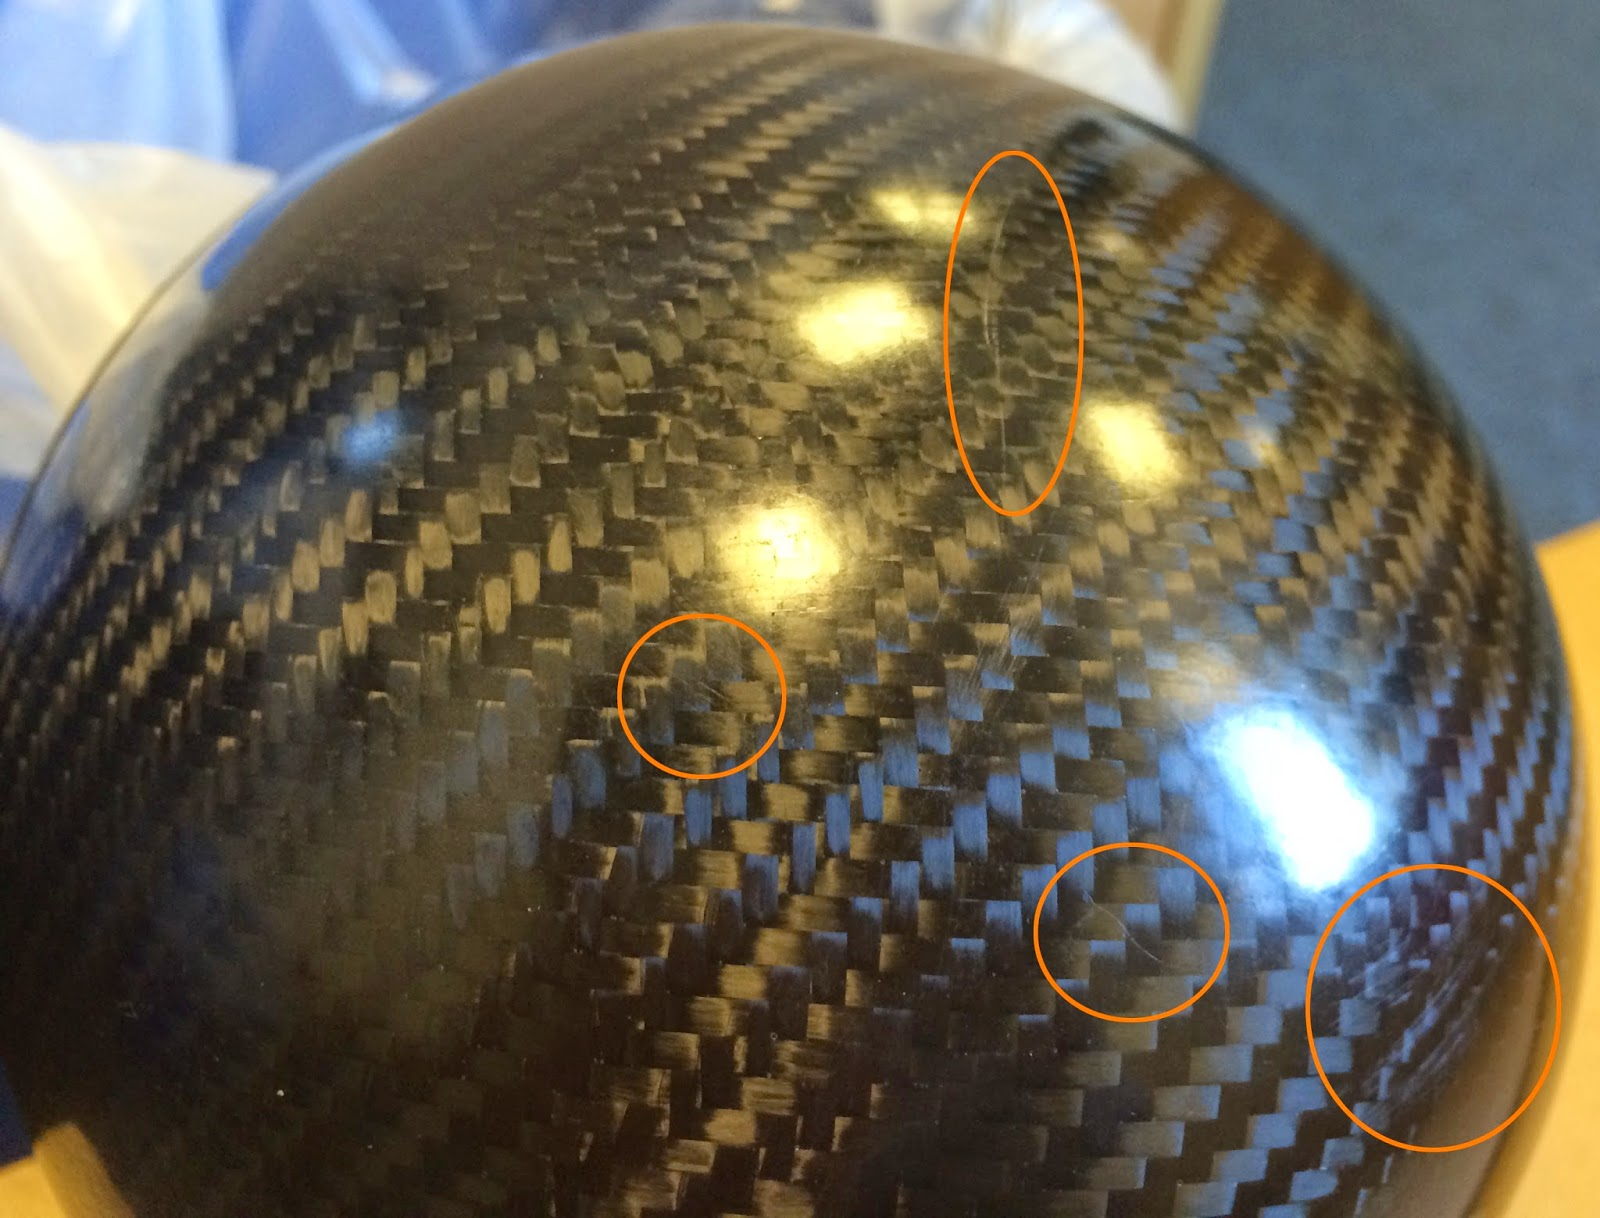 Caterham Carbon Headlight Bowls - with some of the scratches highlighted.